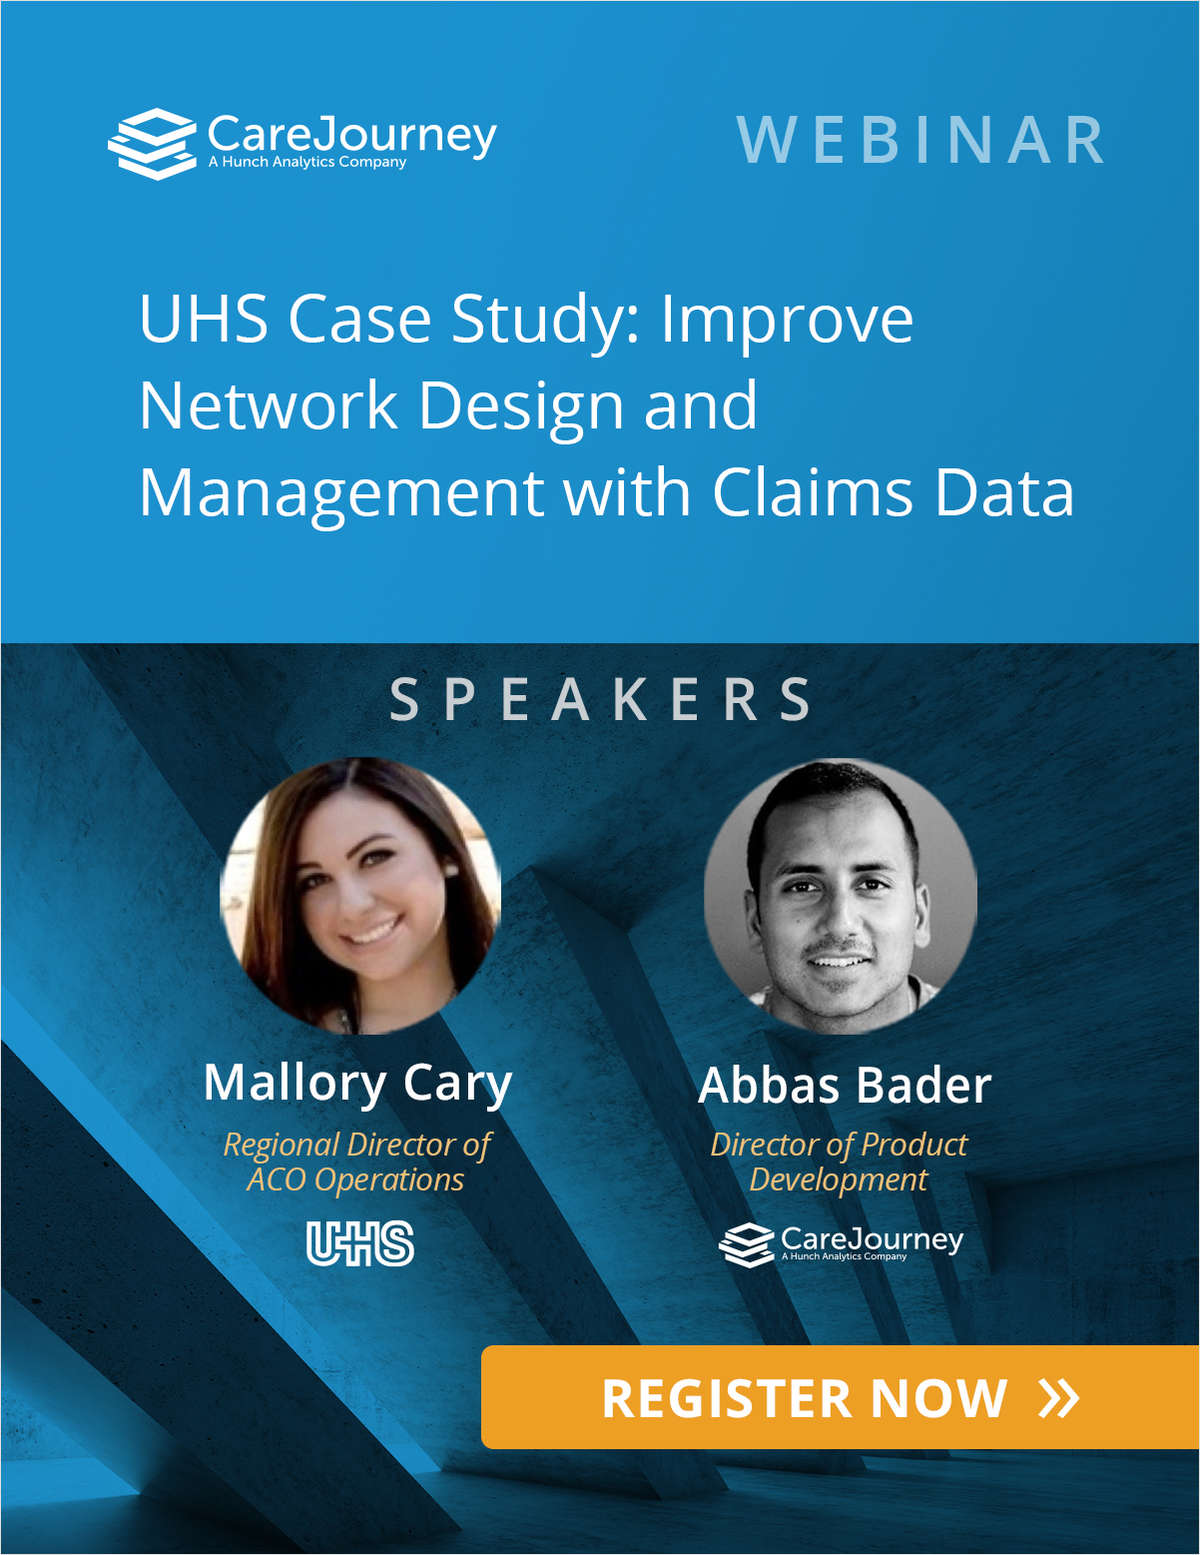 UHS Case Study Webinar: Improve Network Design and Management with Claims Data